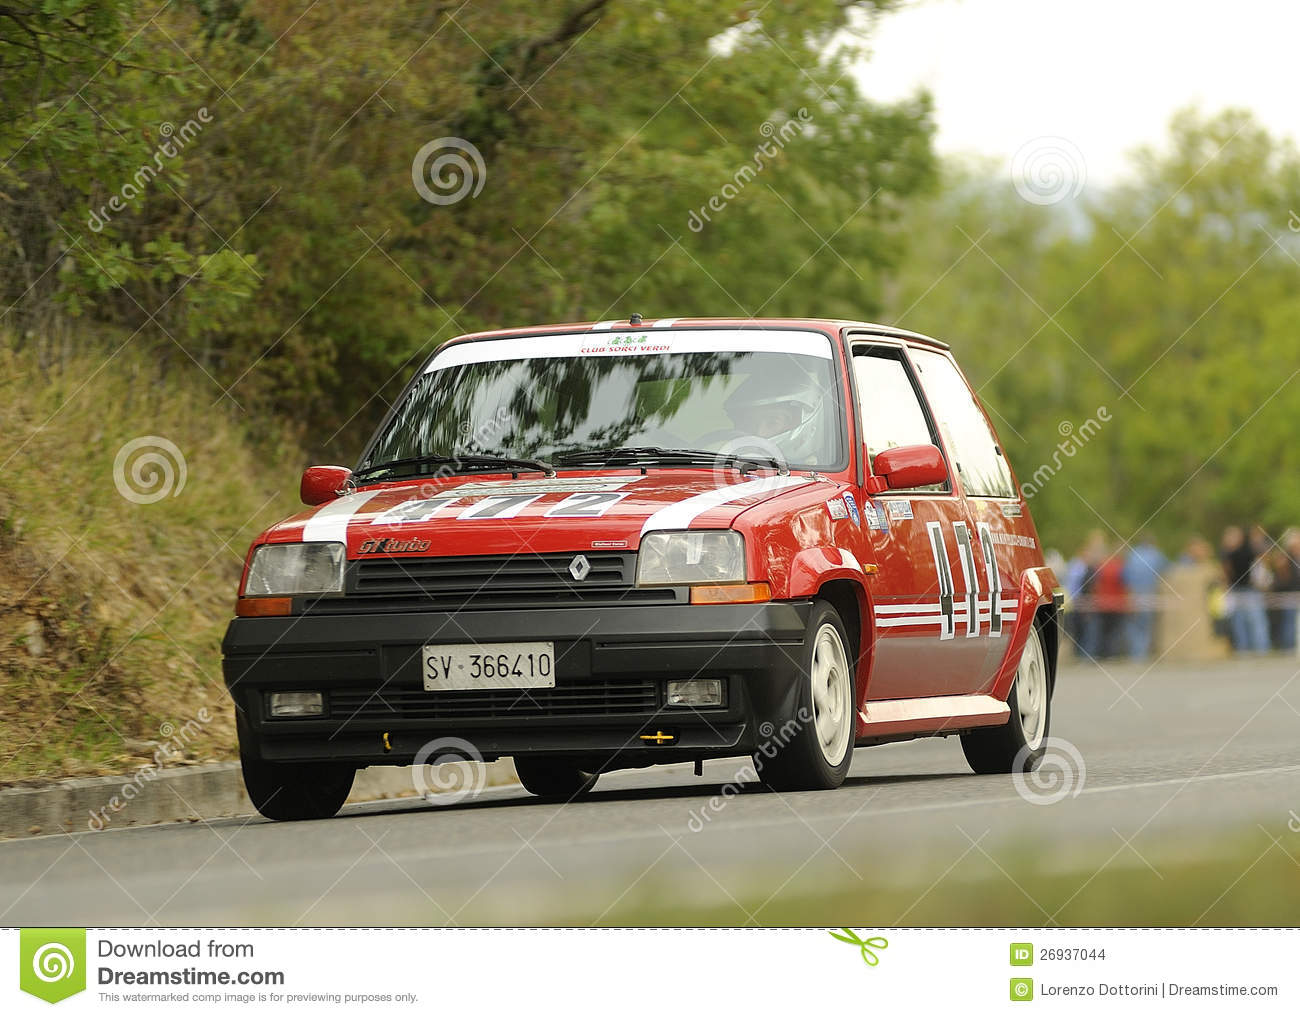 Renault 5 Gt Turbo Editorial Stock Image Image Of Ford 26937044